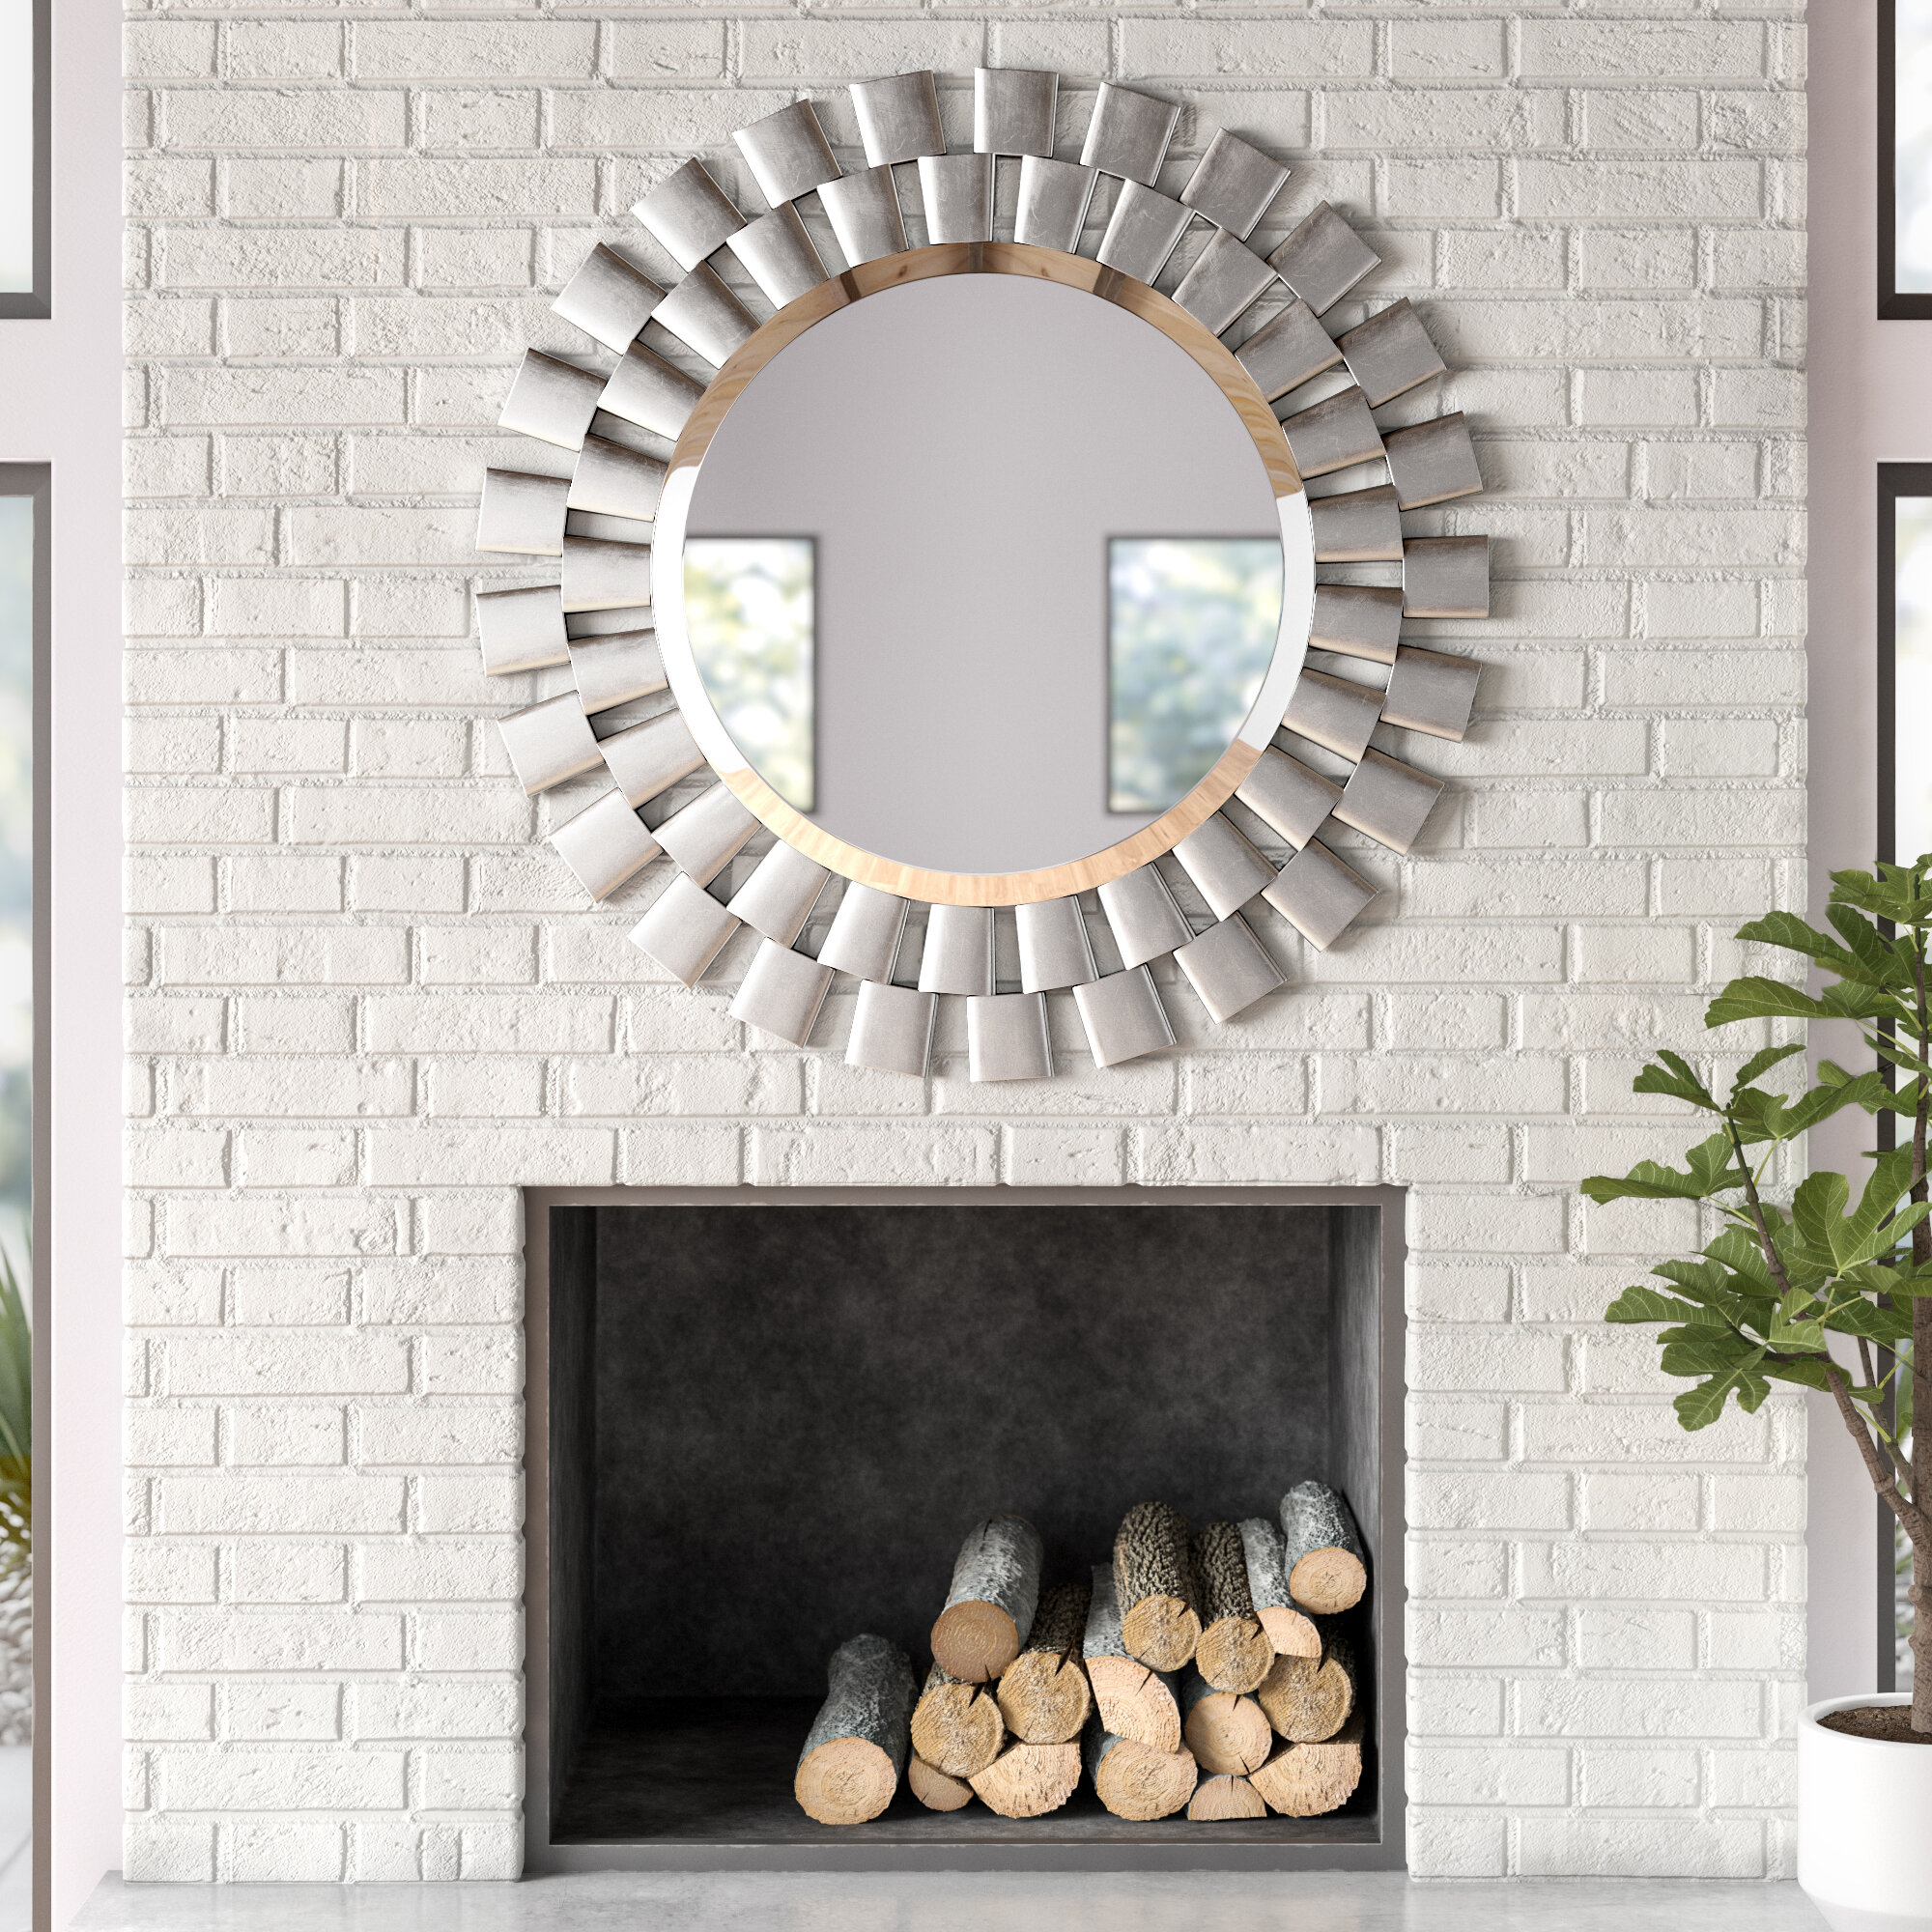 Glam Beveled Accent Mirror With Josephson Starburst Glam Beveled Accent Wall Mirrors (Image 6 of 20)